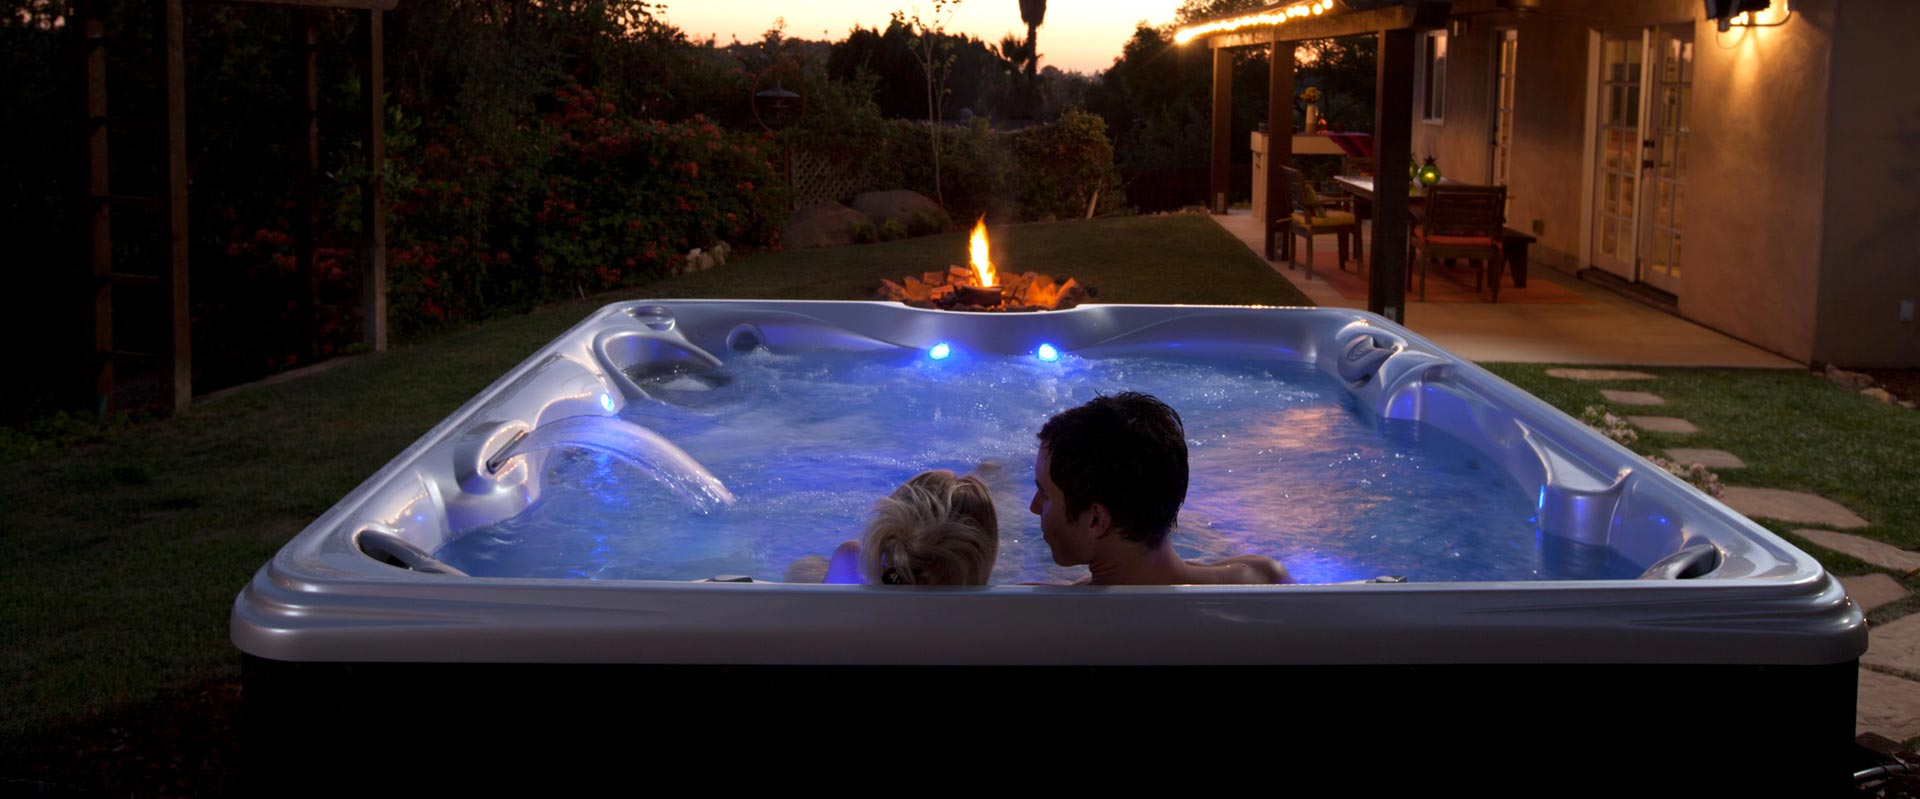 Hard Wired Vs Plug N Play Hot Tubs Pioneer Family Pools Blog Cost Of Electrical Wiring For Tub